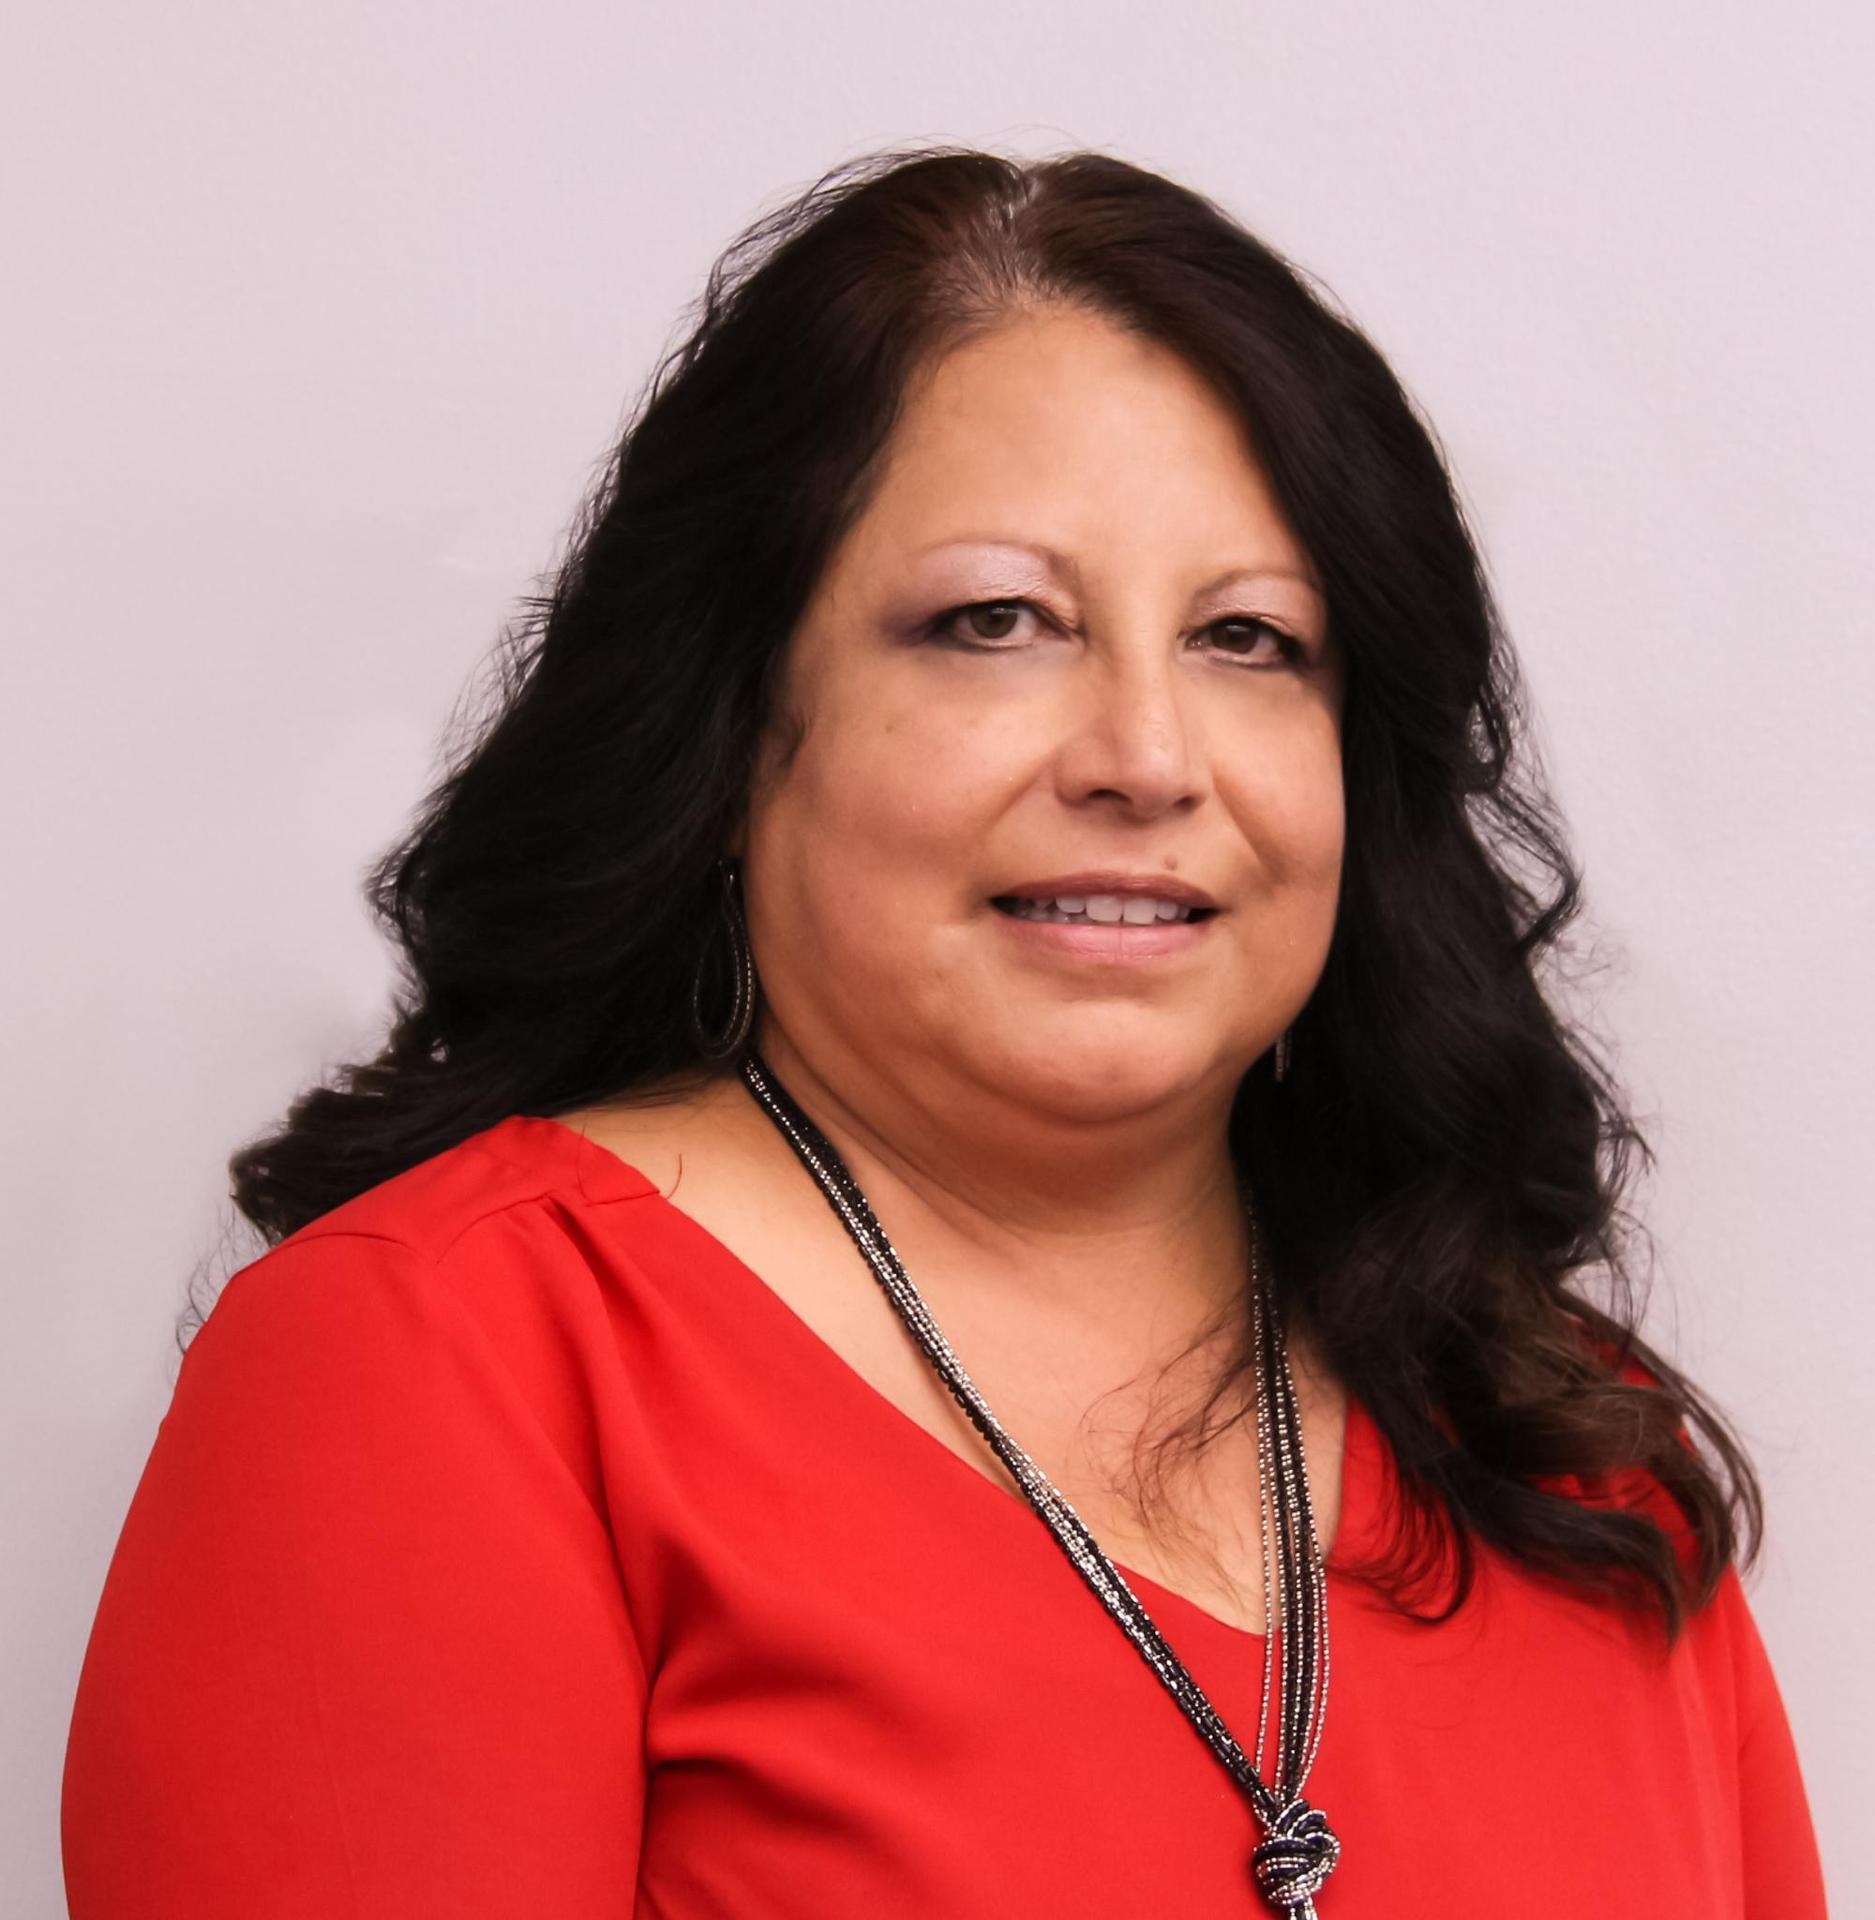 Elizabeth Zaragoza, Director of Preschool